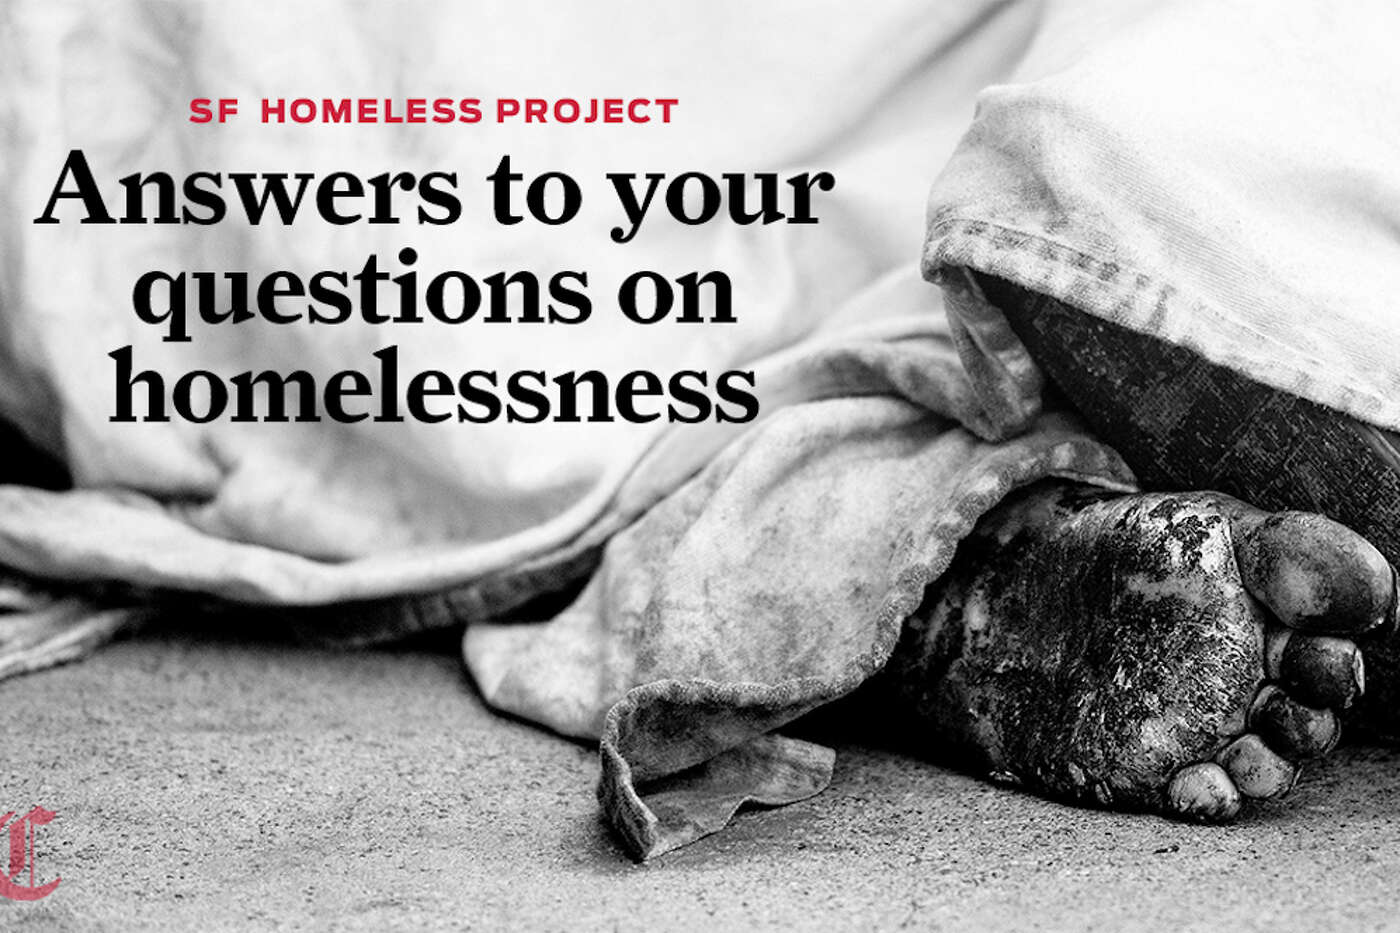 Bay Area homelessness: 89 answers to your questions